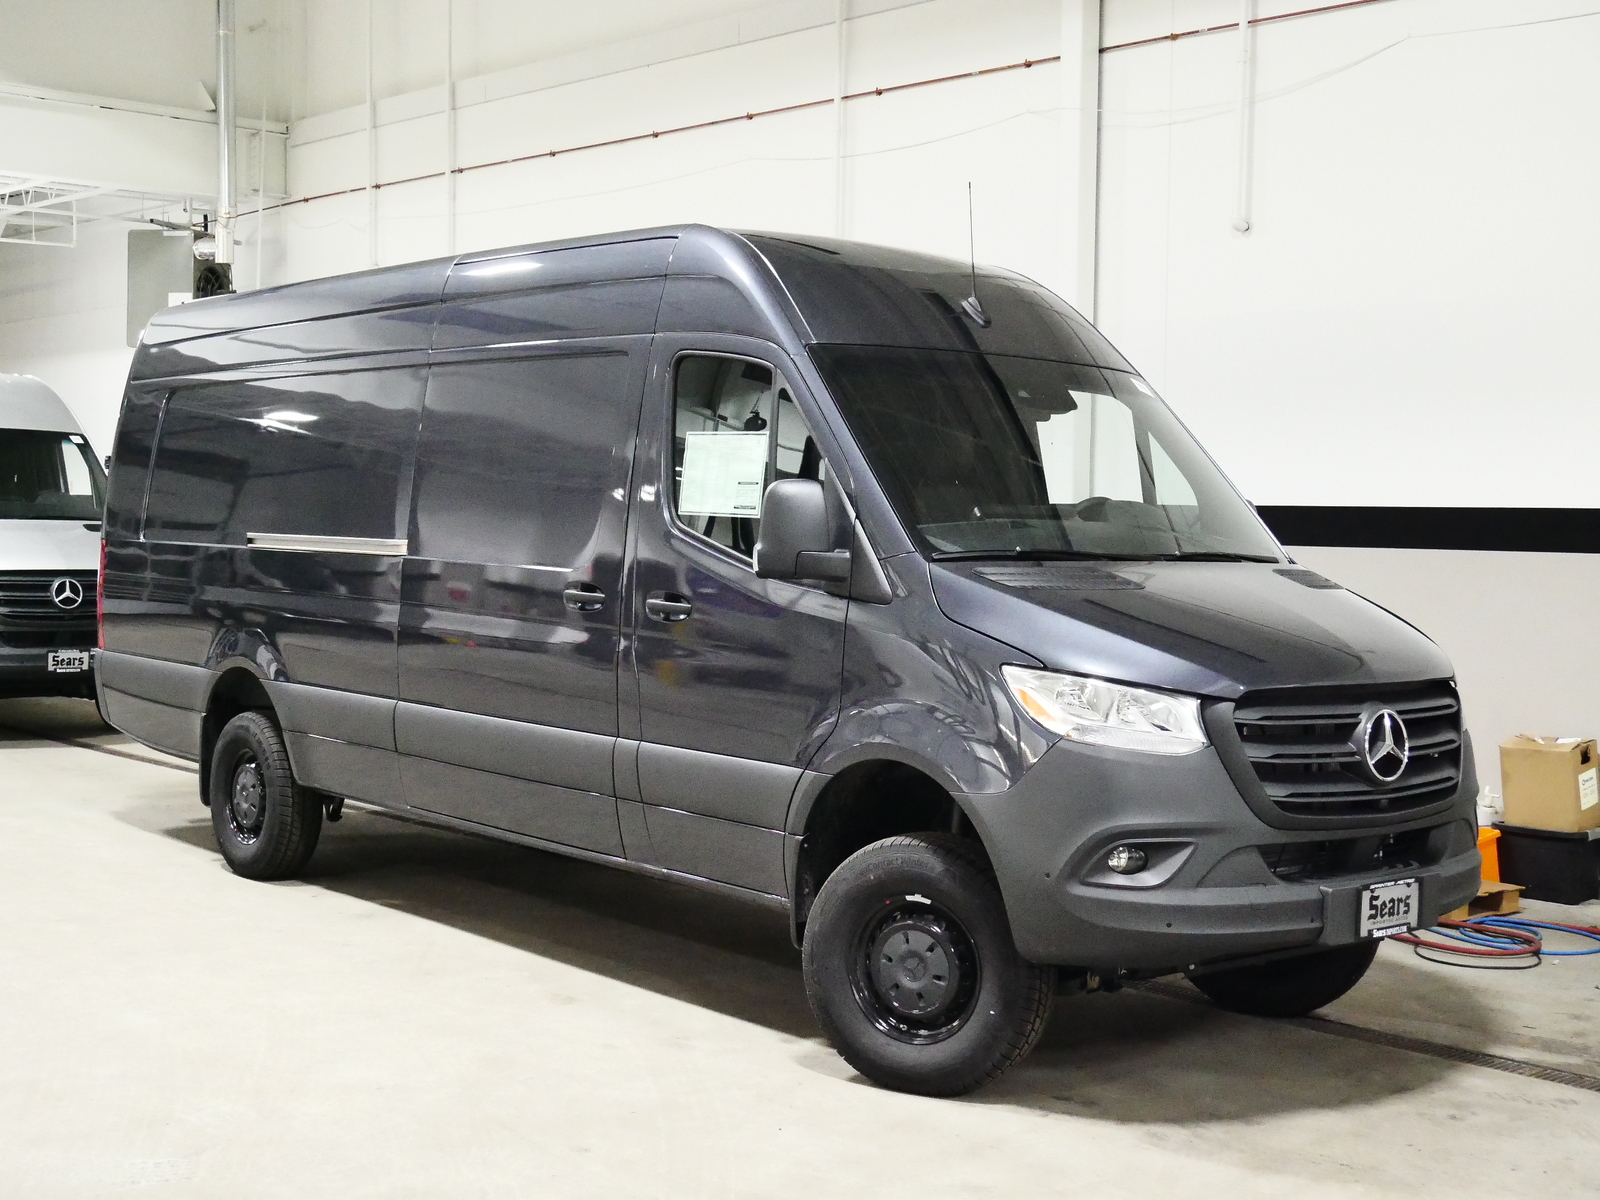 New 2019 Mercedes-Benz Sprinter 2500 2500 Extended Cargo Van